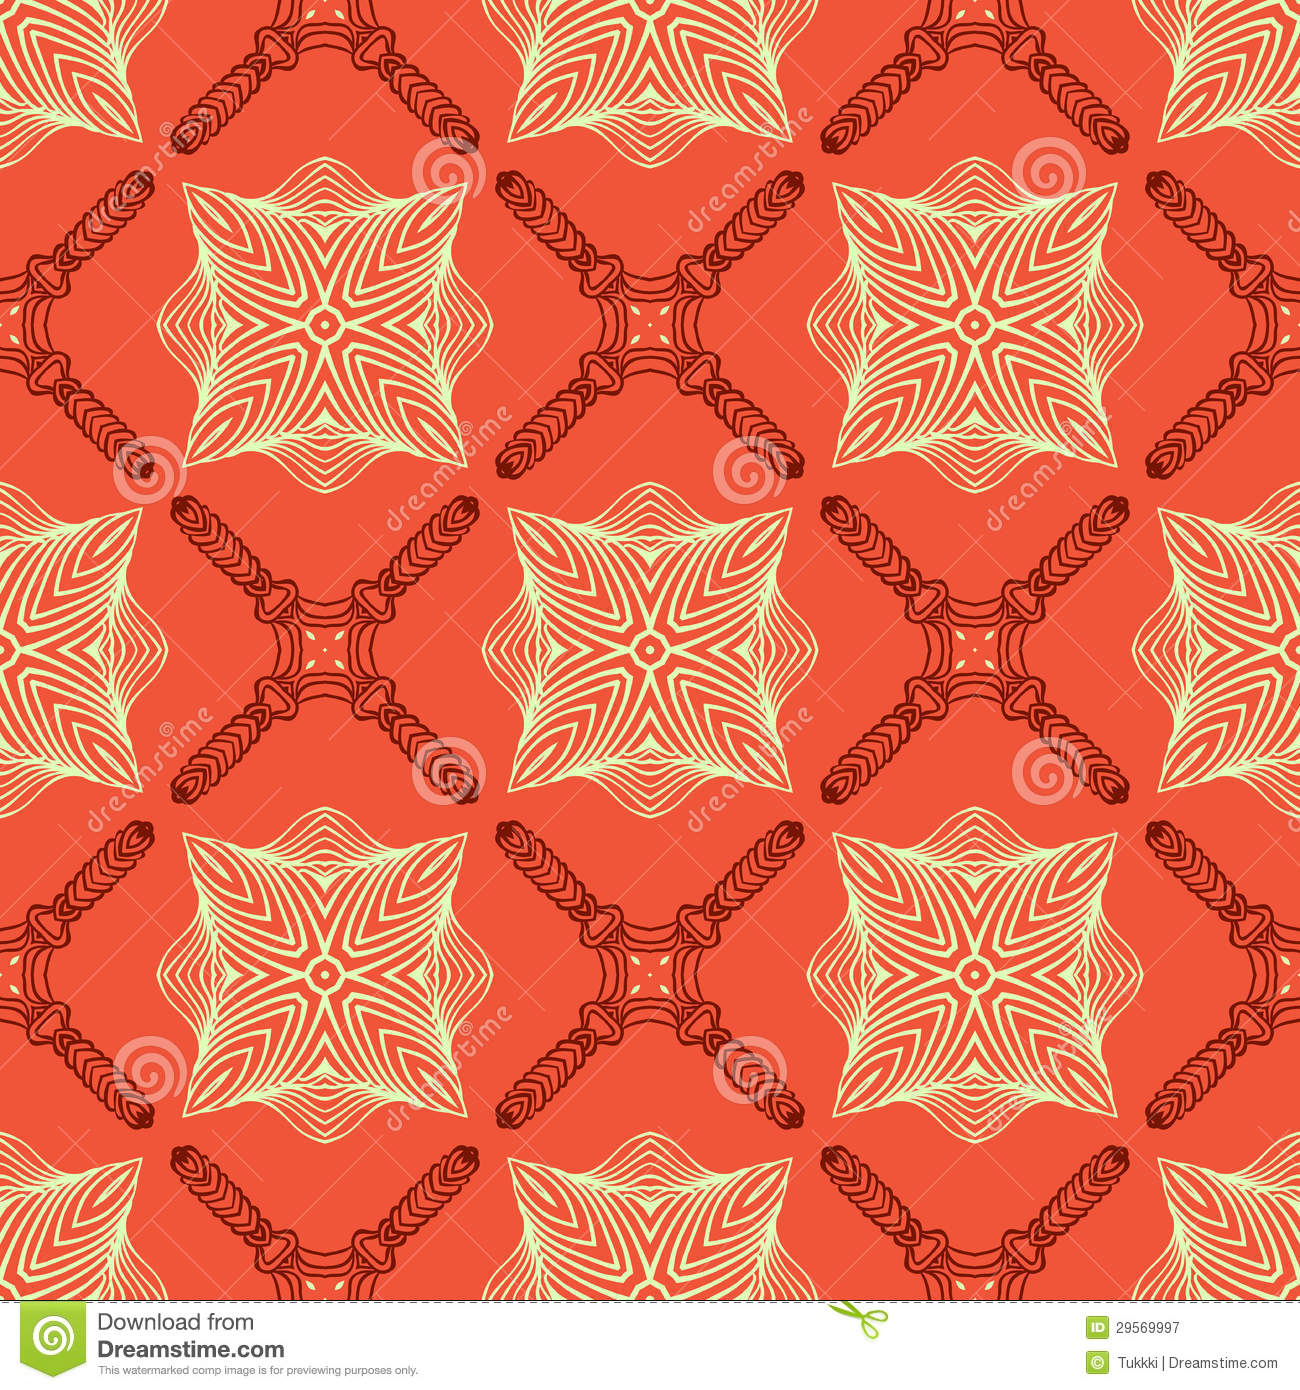 Linear Elegant Pattern With Medieval Look. Stock Vector ...